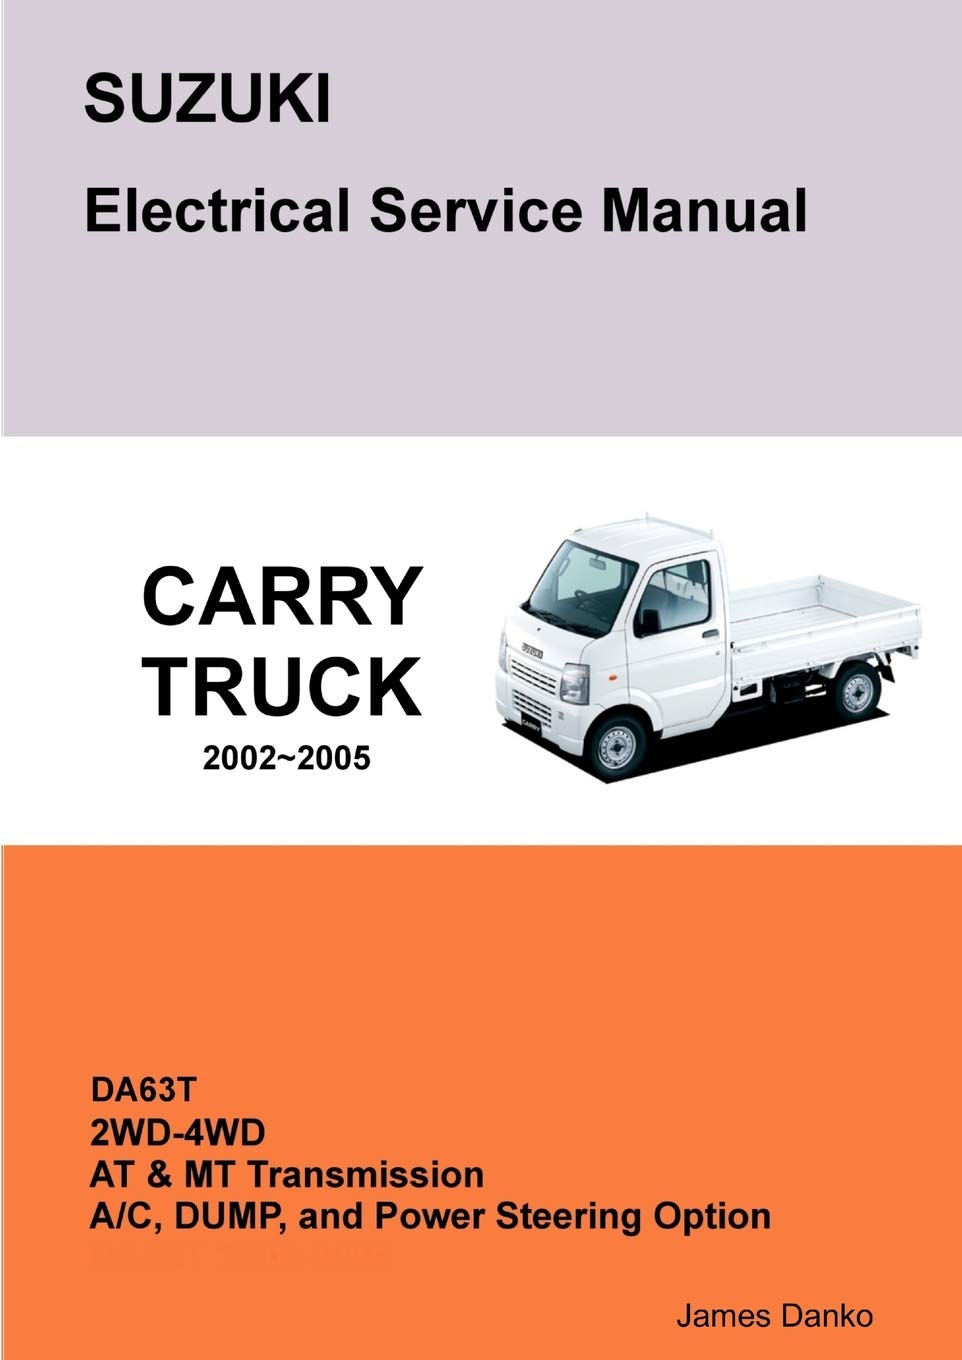 Suzuki Carry Da63T Electrical Service Manual & Diagrams: Danko, James:  9781257745517: Amazon.com: BooksAmazon.com